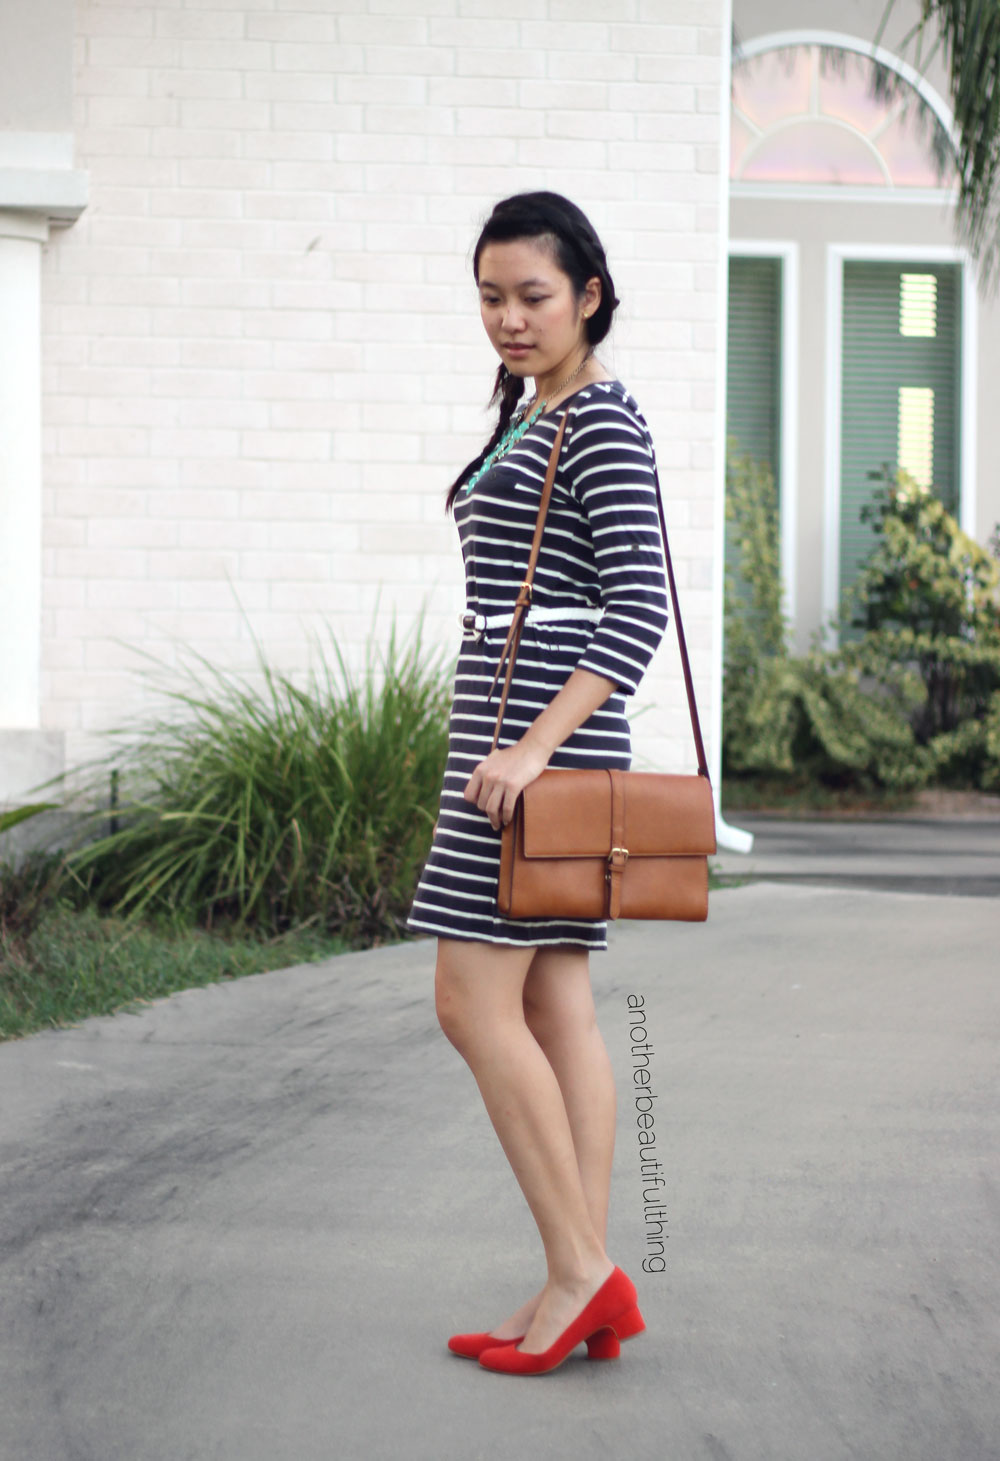 Brown satchel and t-shirt dress || Talbots Kyla Suede Almond-Toe Pumps